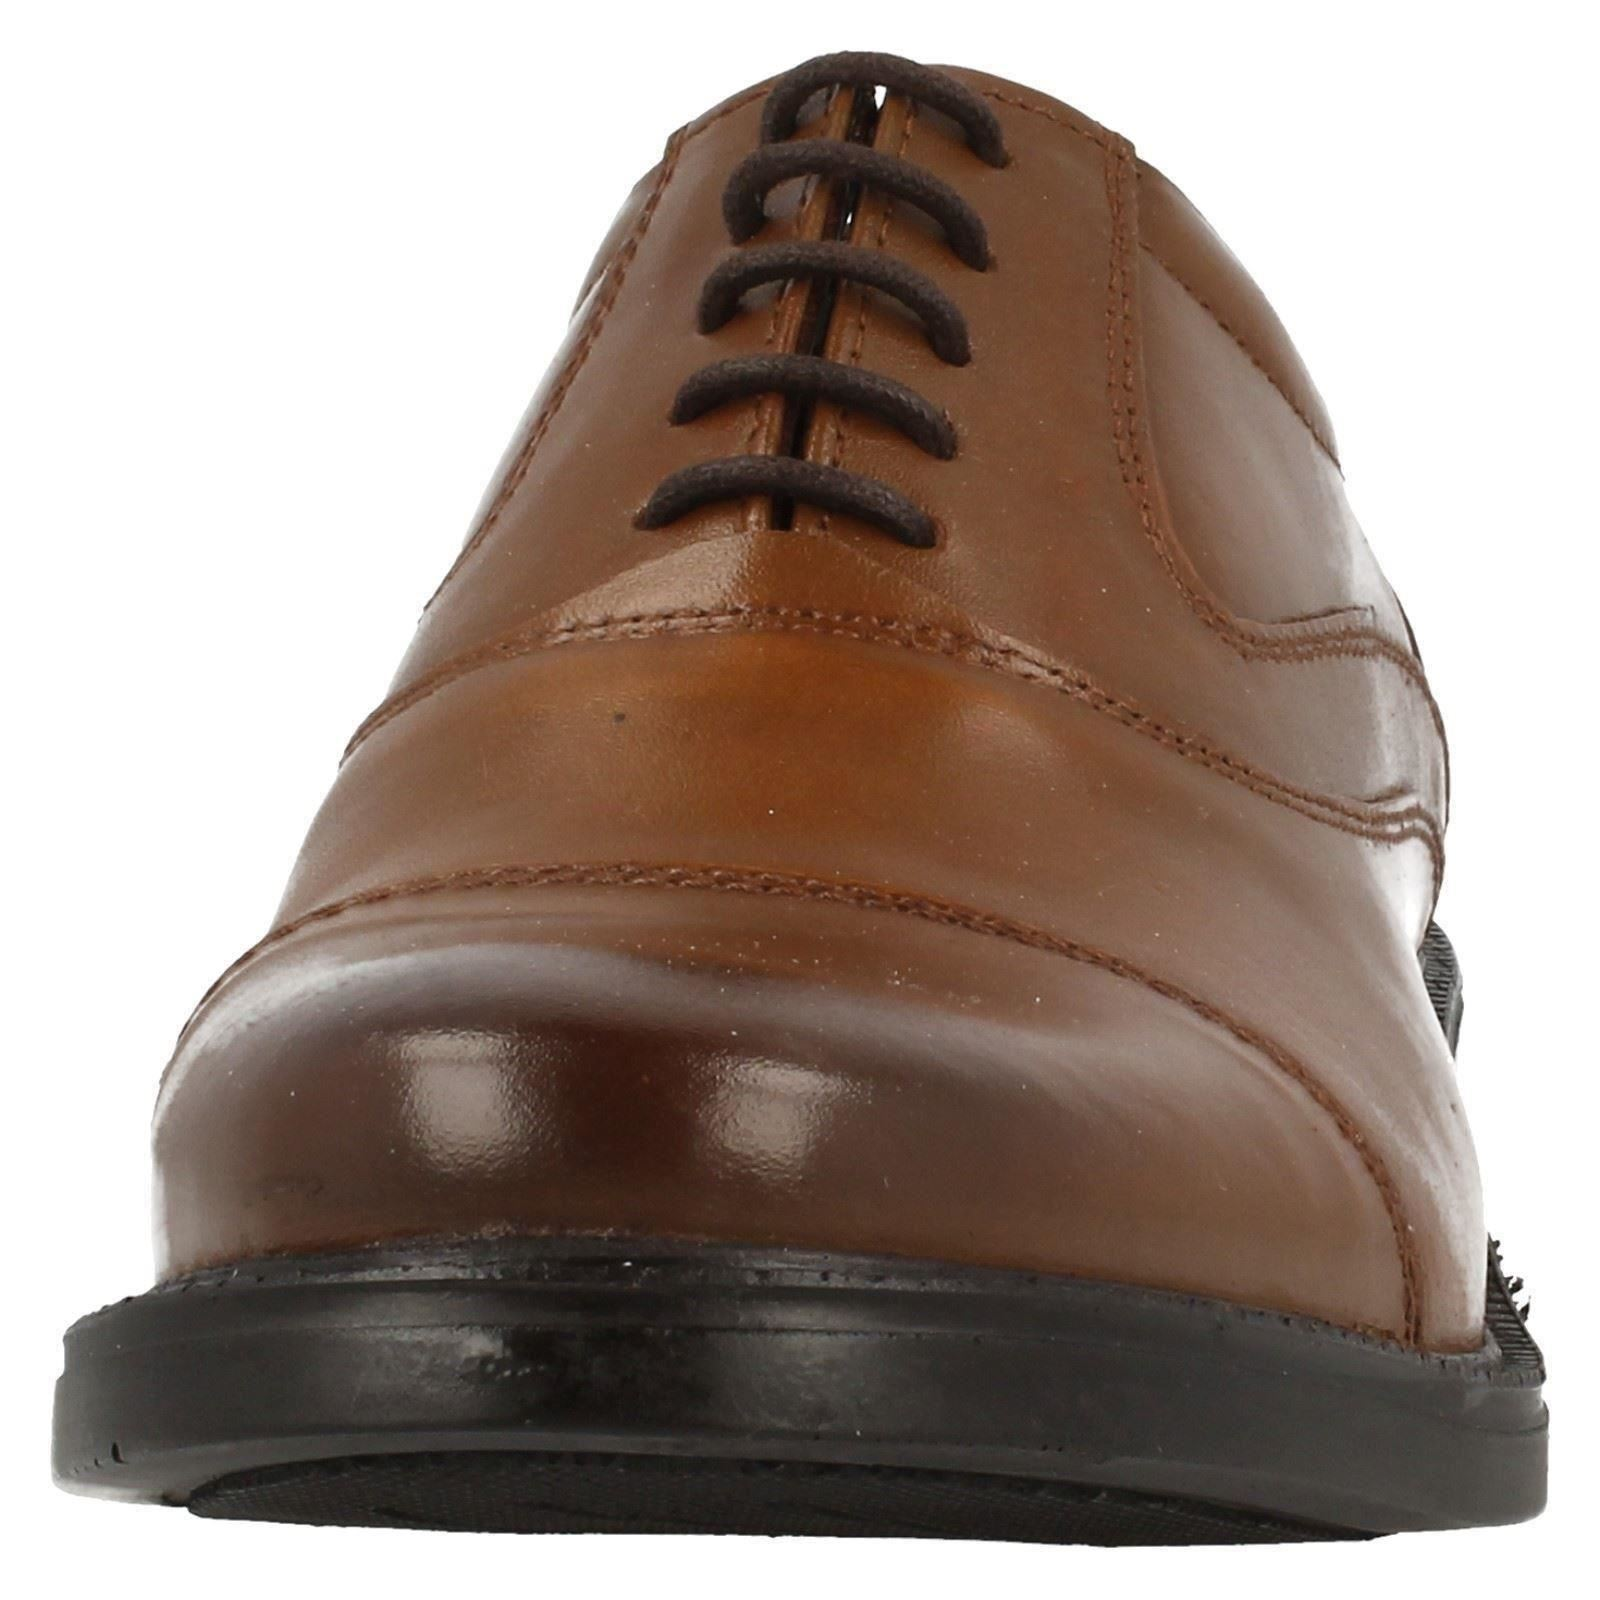 Details about Mens Hush-Puppies Formal Oxford Shoes Rockford Oxford